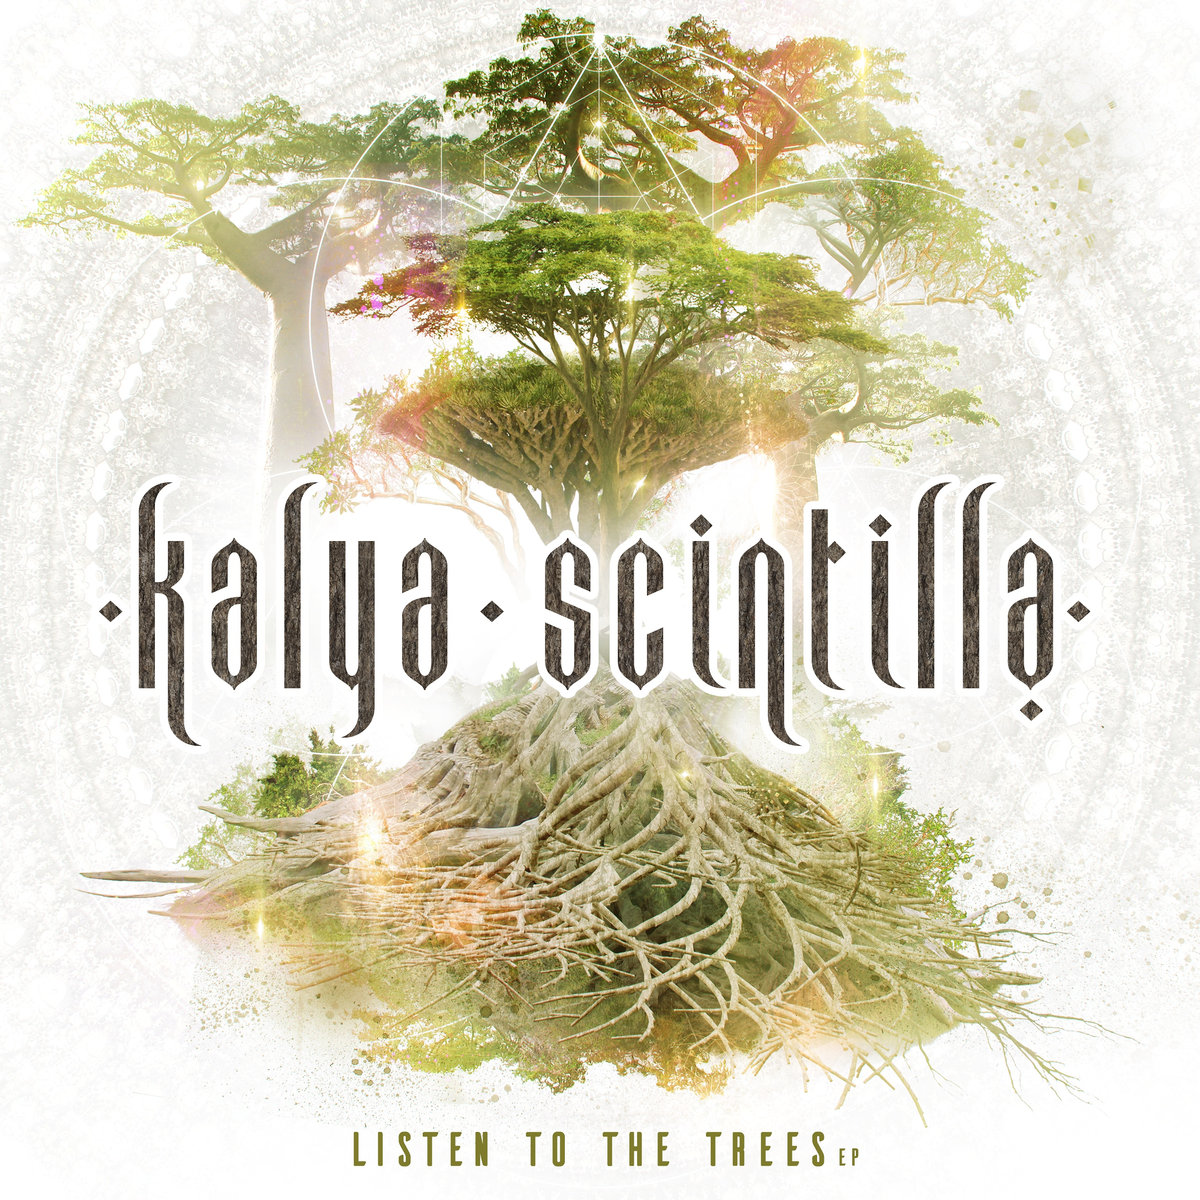 Kalya Scintilla - Listen to the Trees